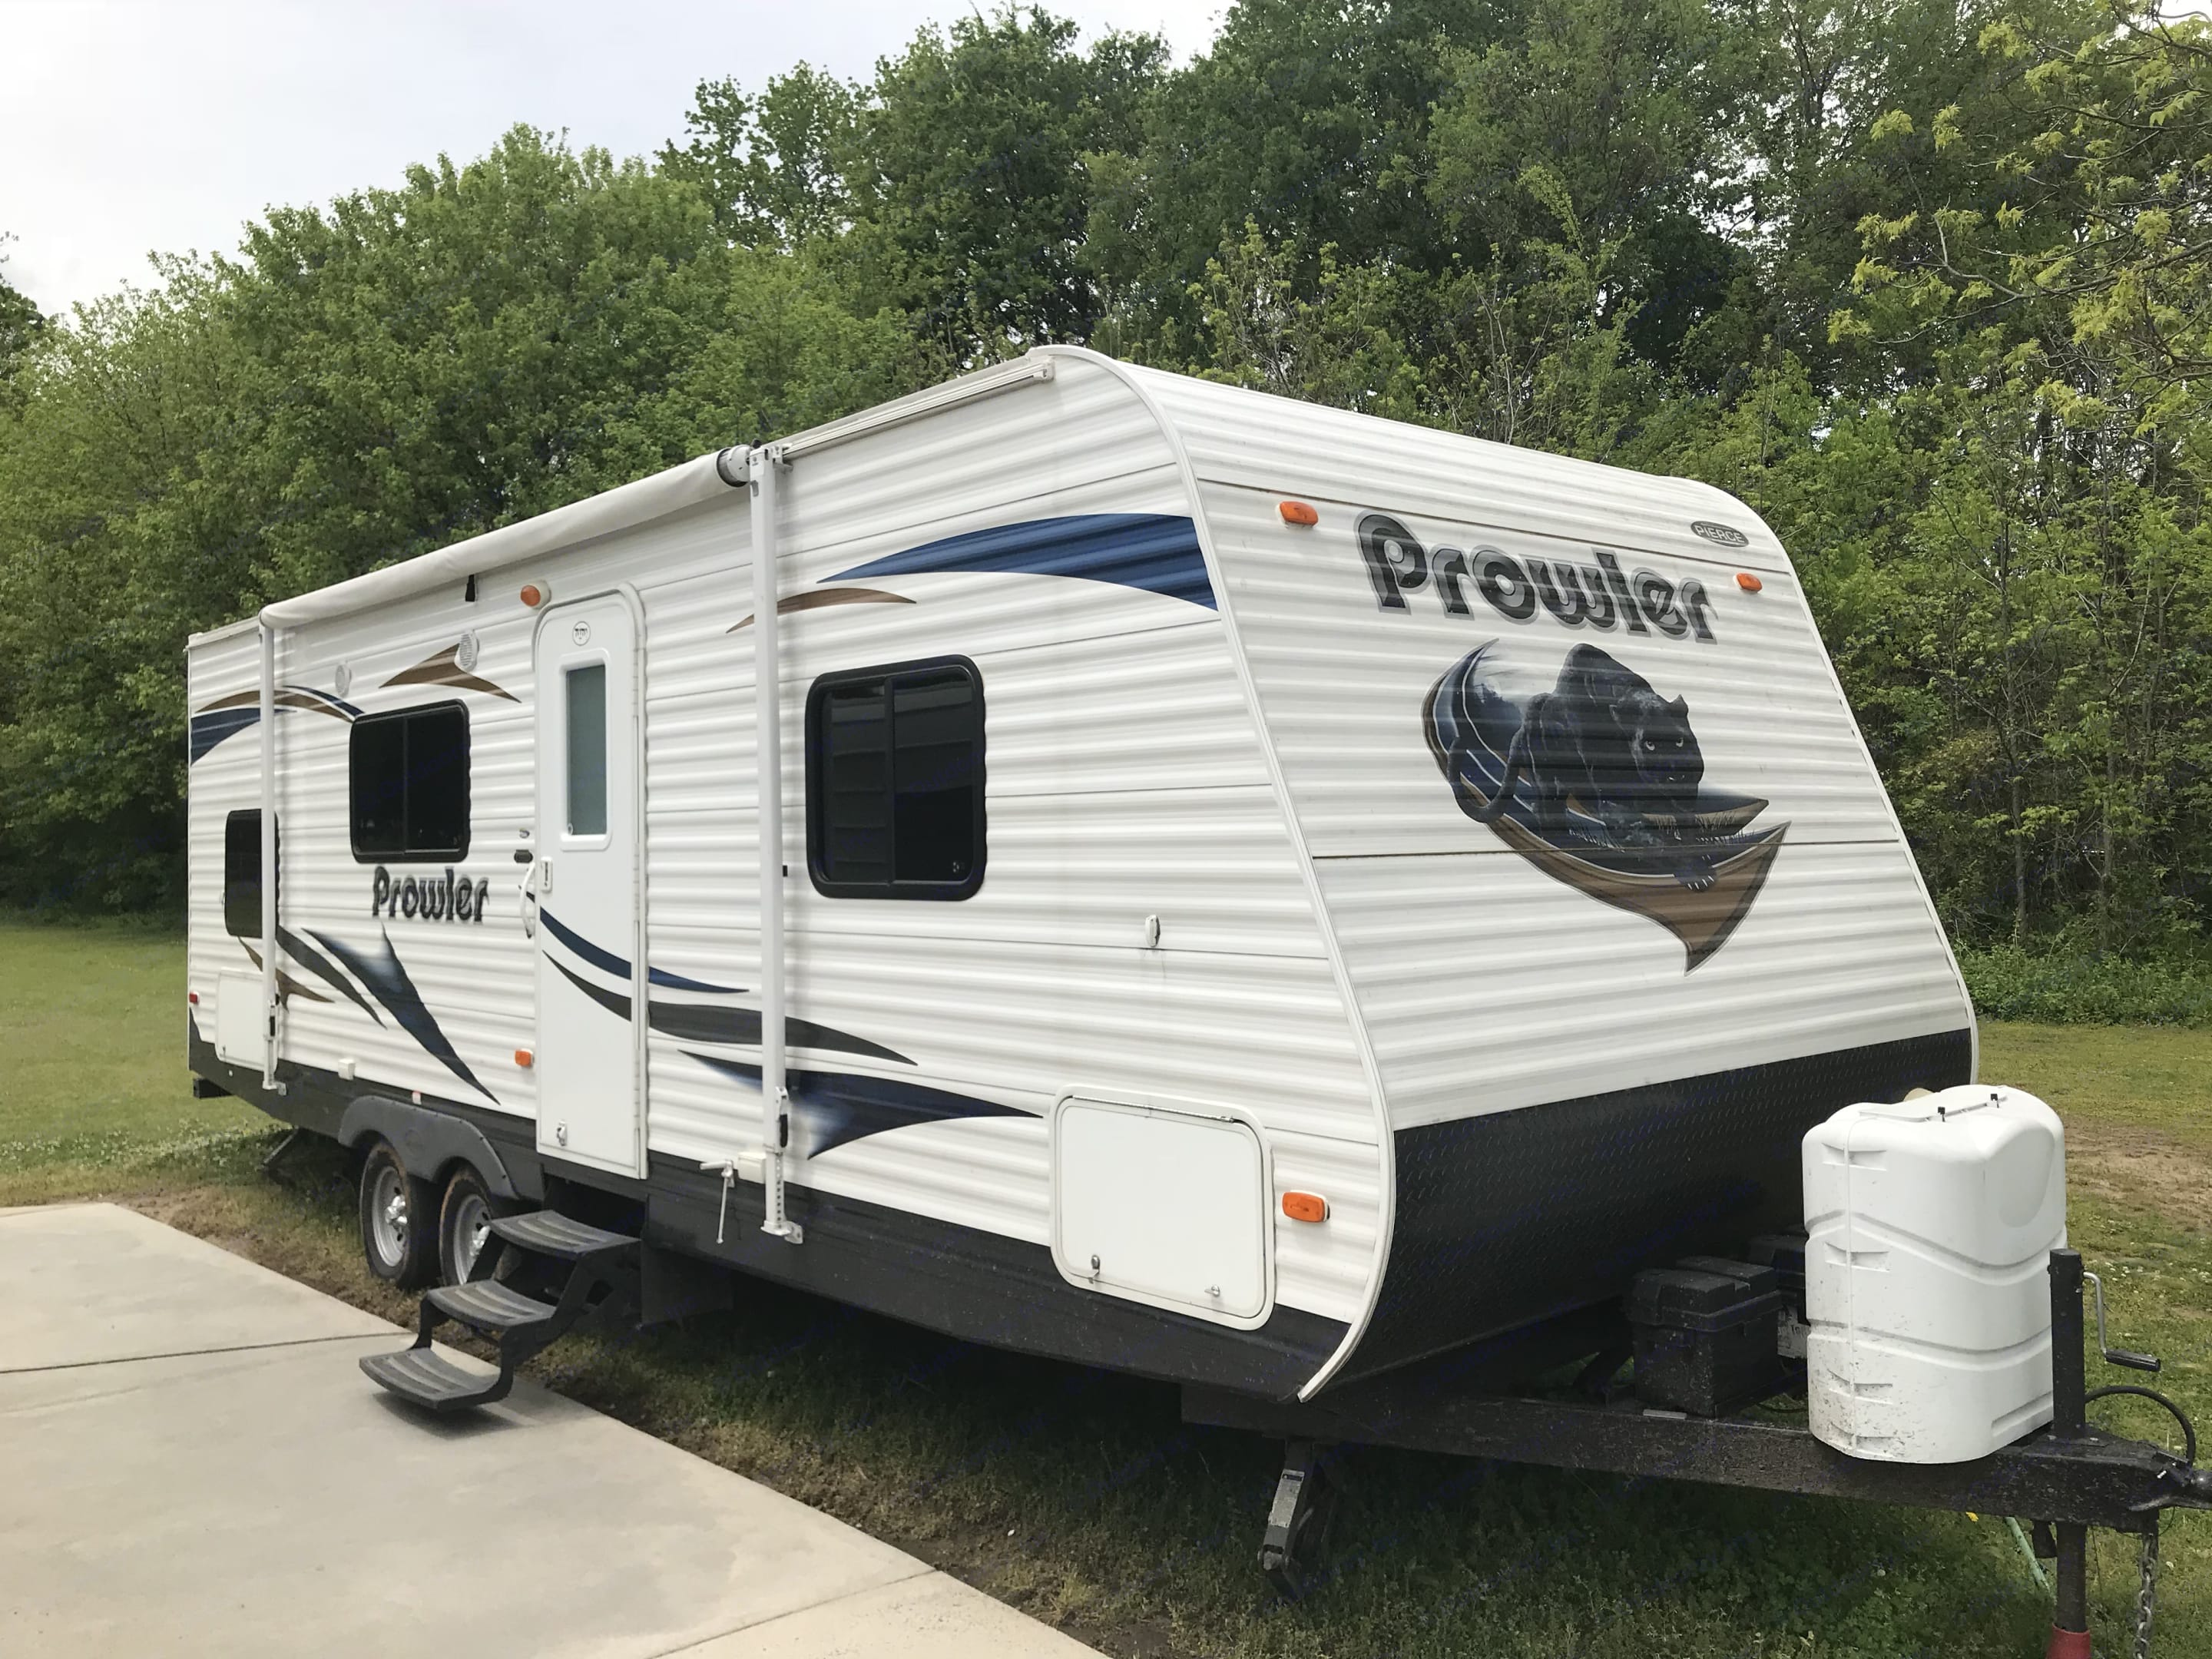 Clean exterior with functional awning, exterior storage compartments, and two larger propane tanks so you will never run out of propane. . Heartland Prowler 2012